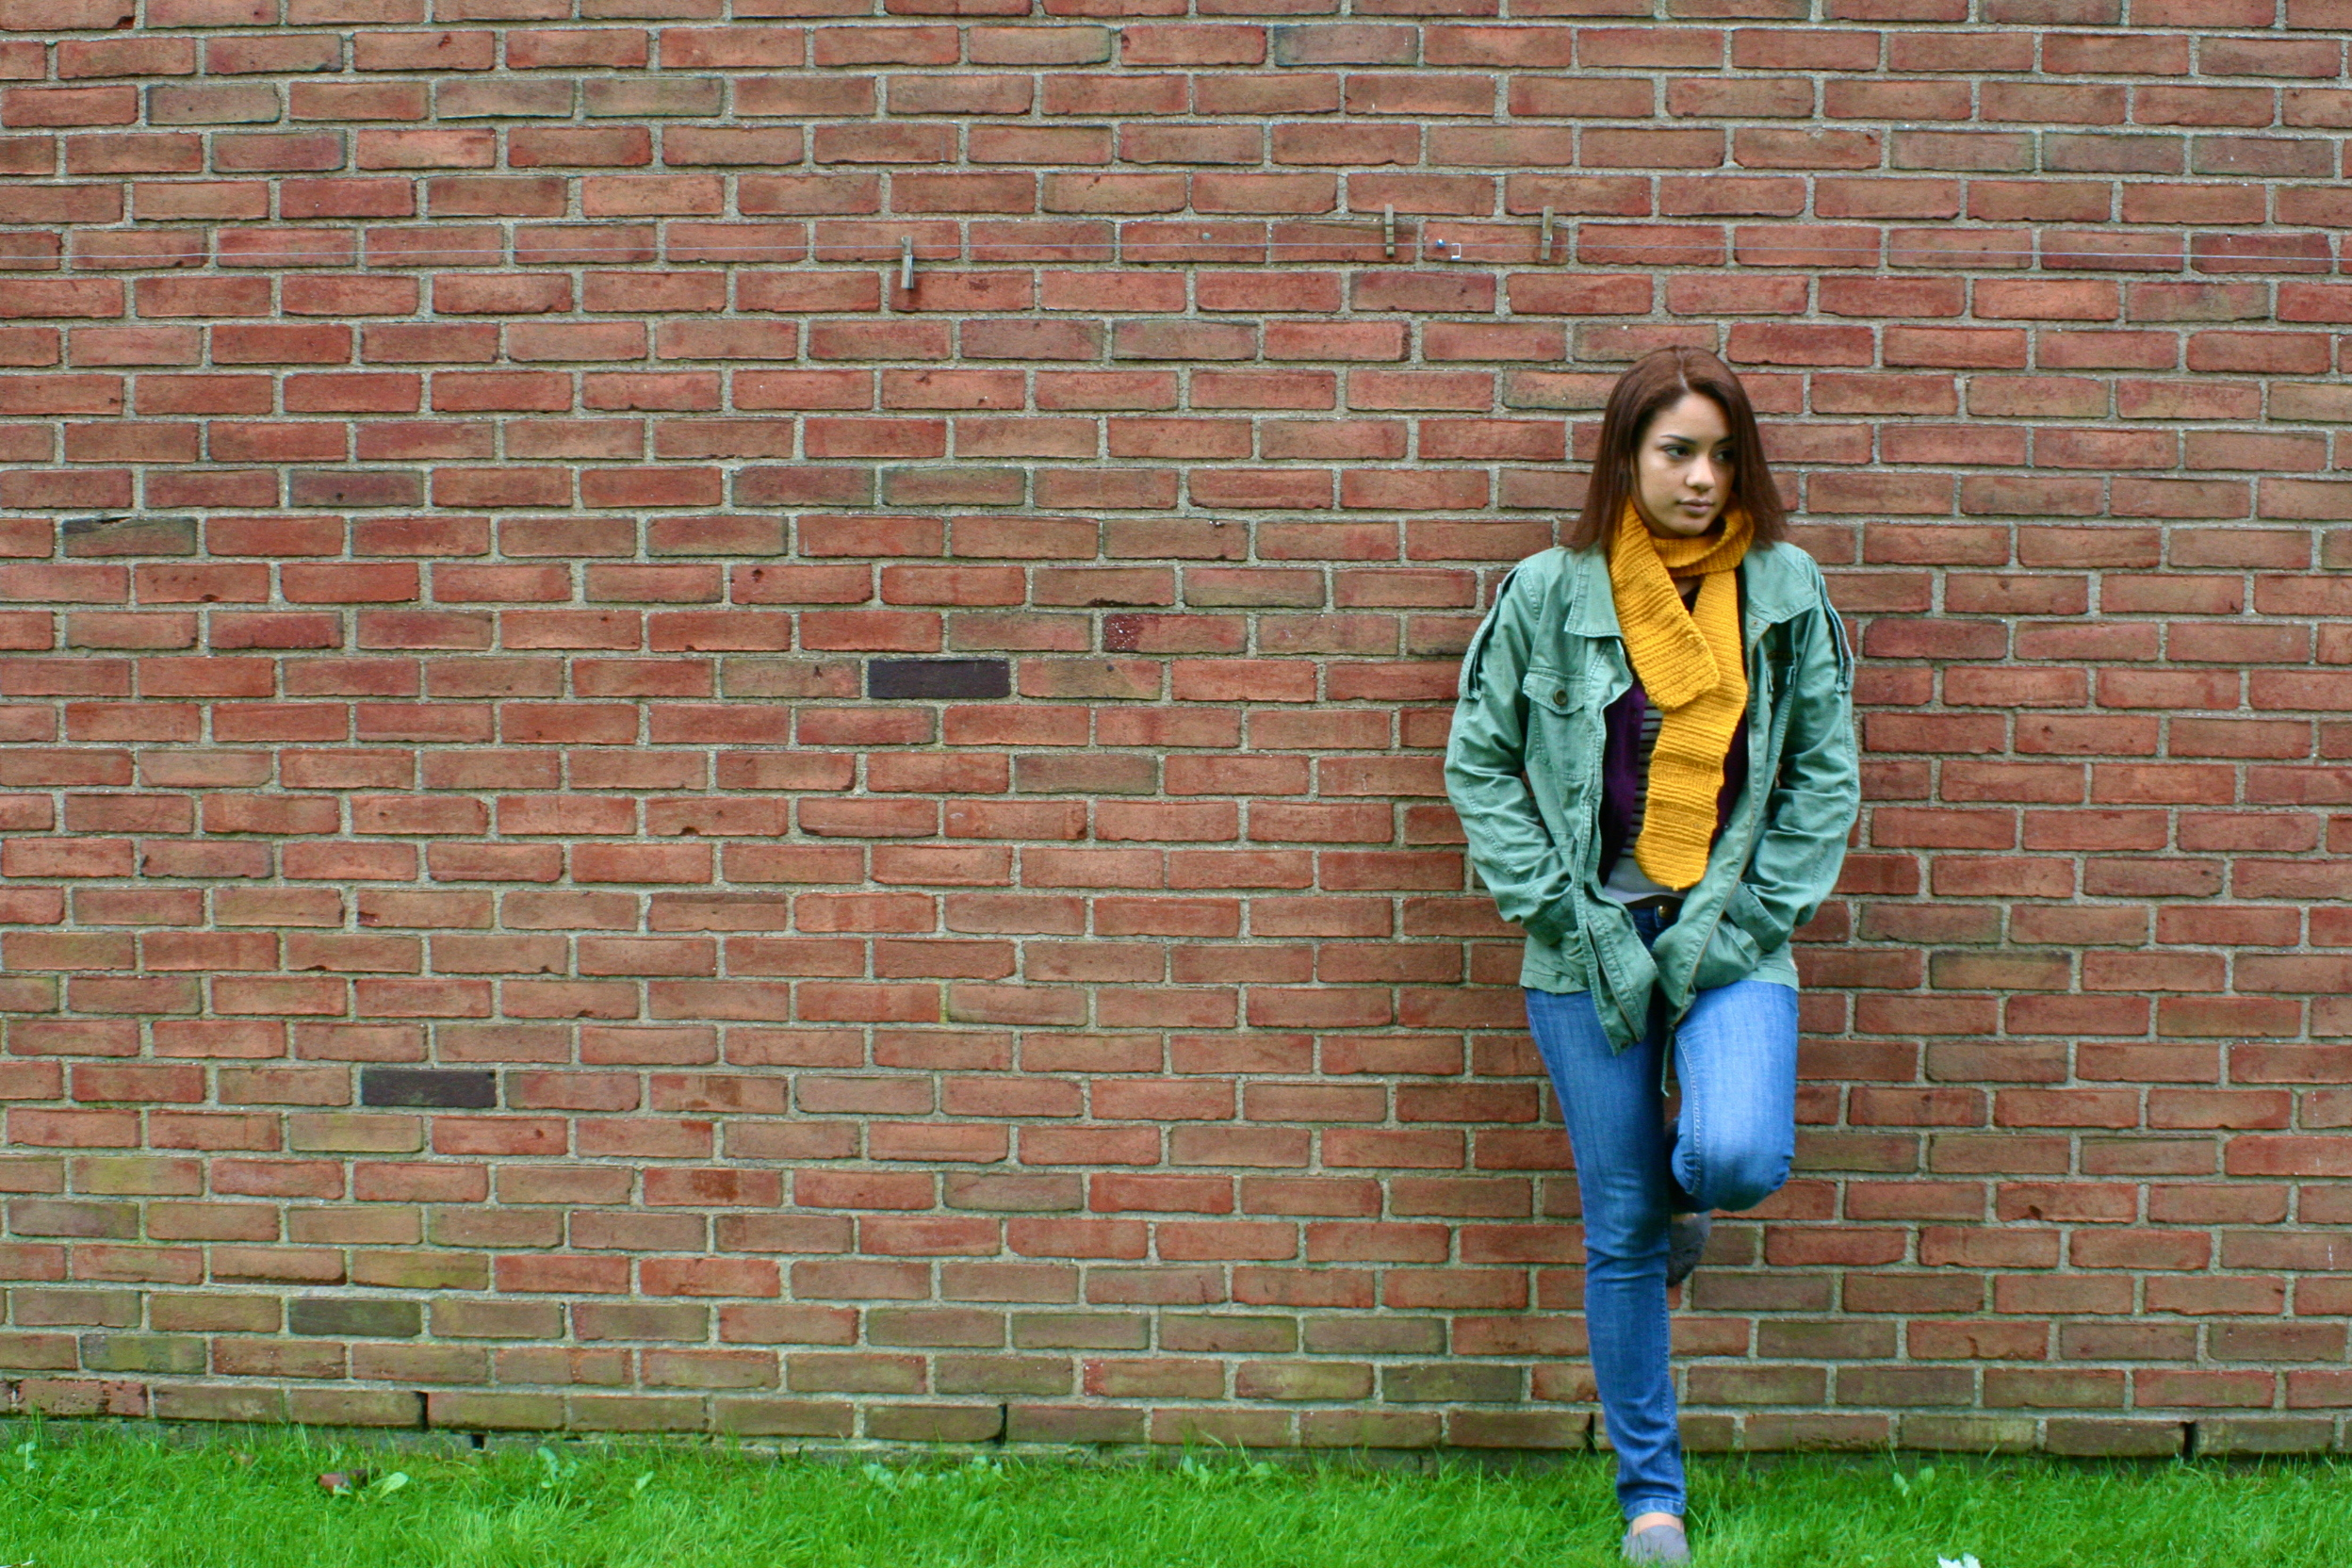 Woman-leaning-on-brick-wall